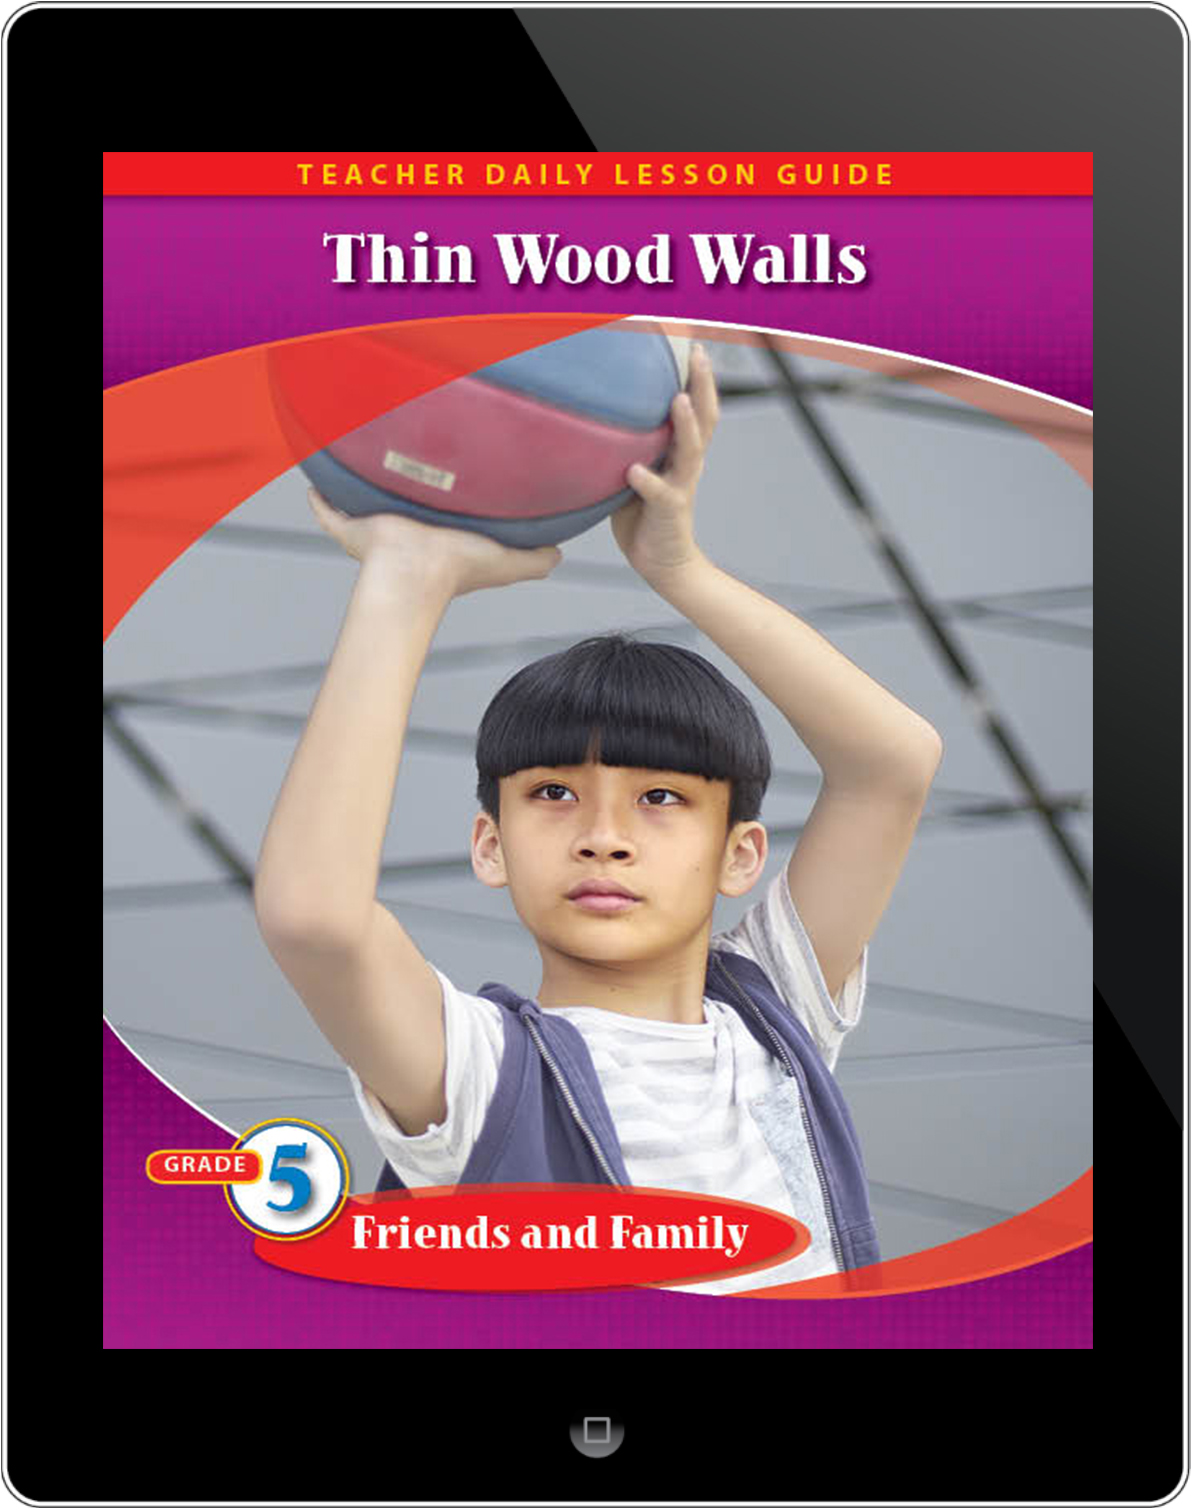 Pathways2.0 Grade 5 Friends and Family Unit: Thin Wood Walls Daily Lesson Guide 5 Year License